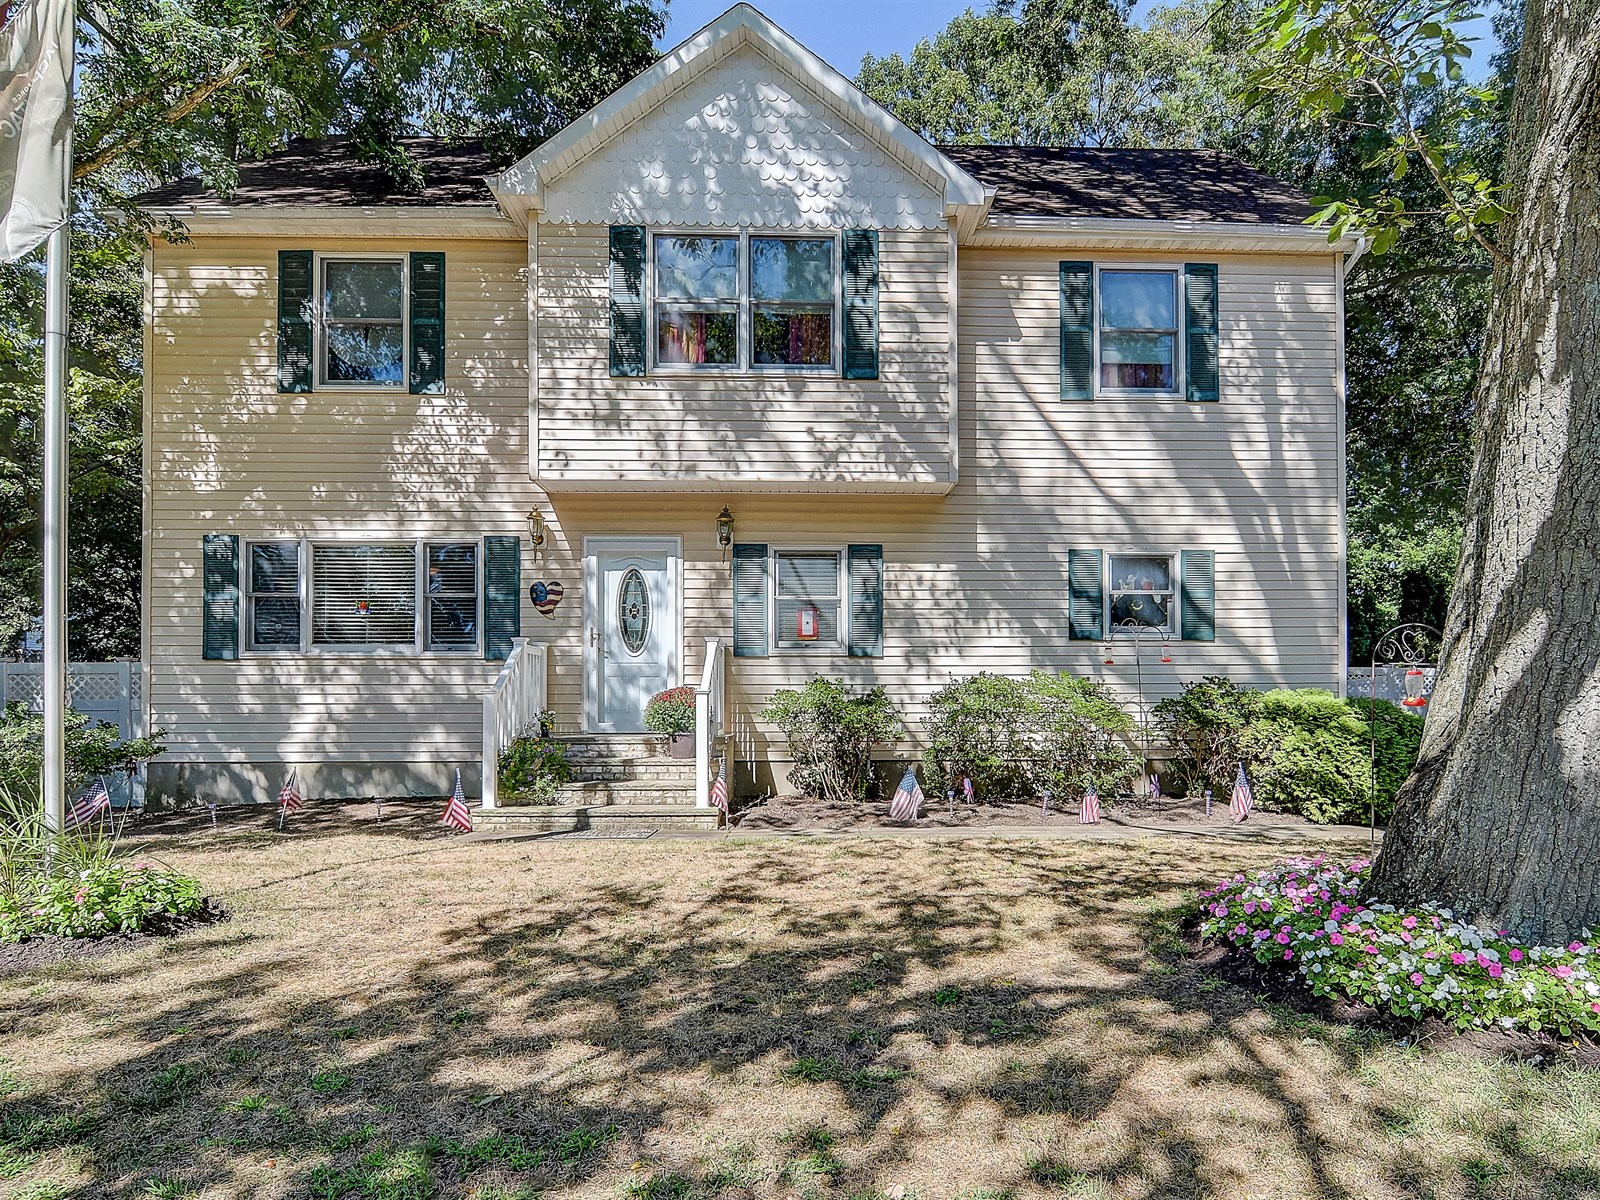 open-houses property at 433 Woodmere Ave.